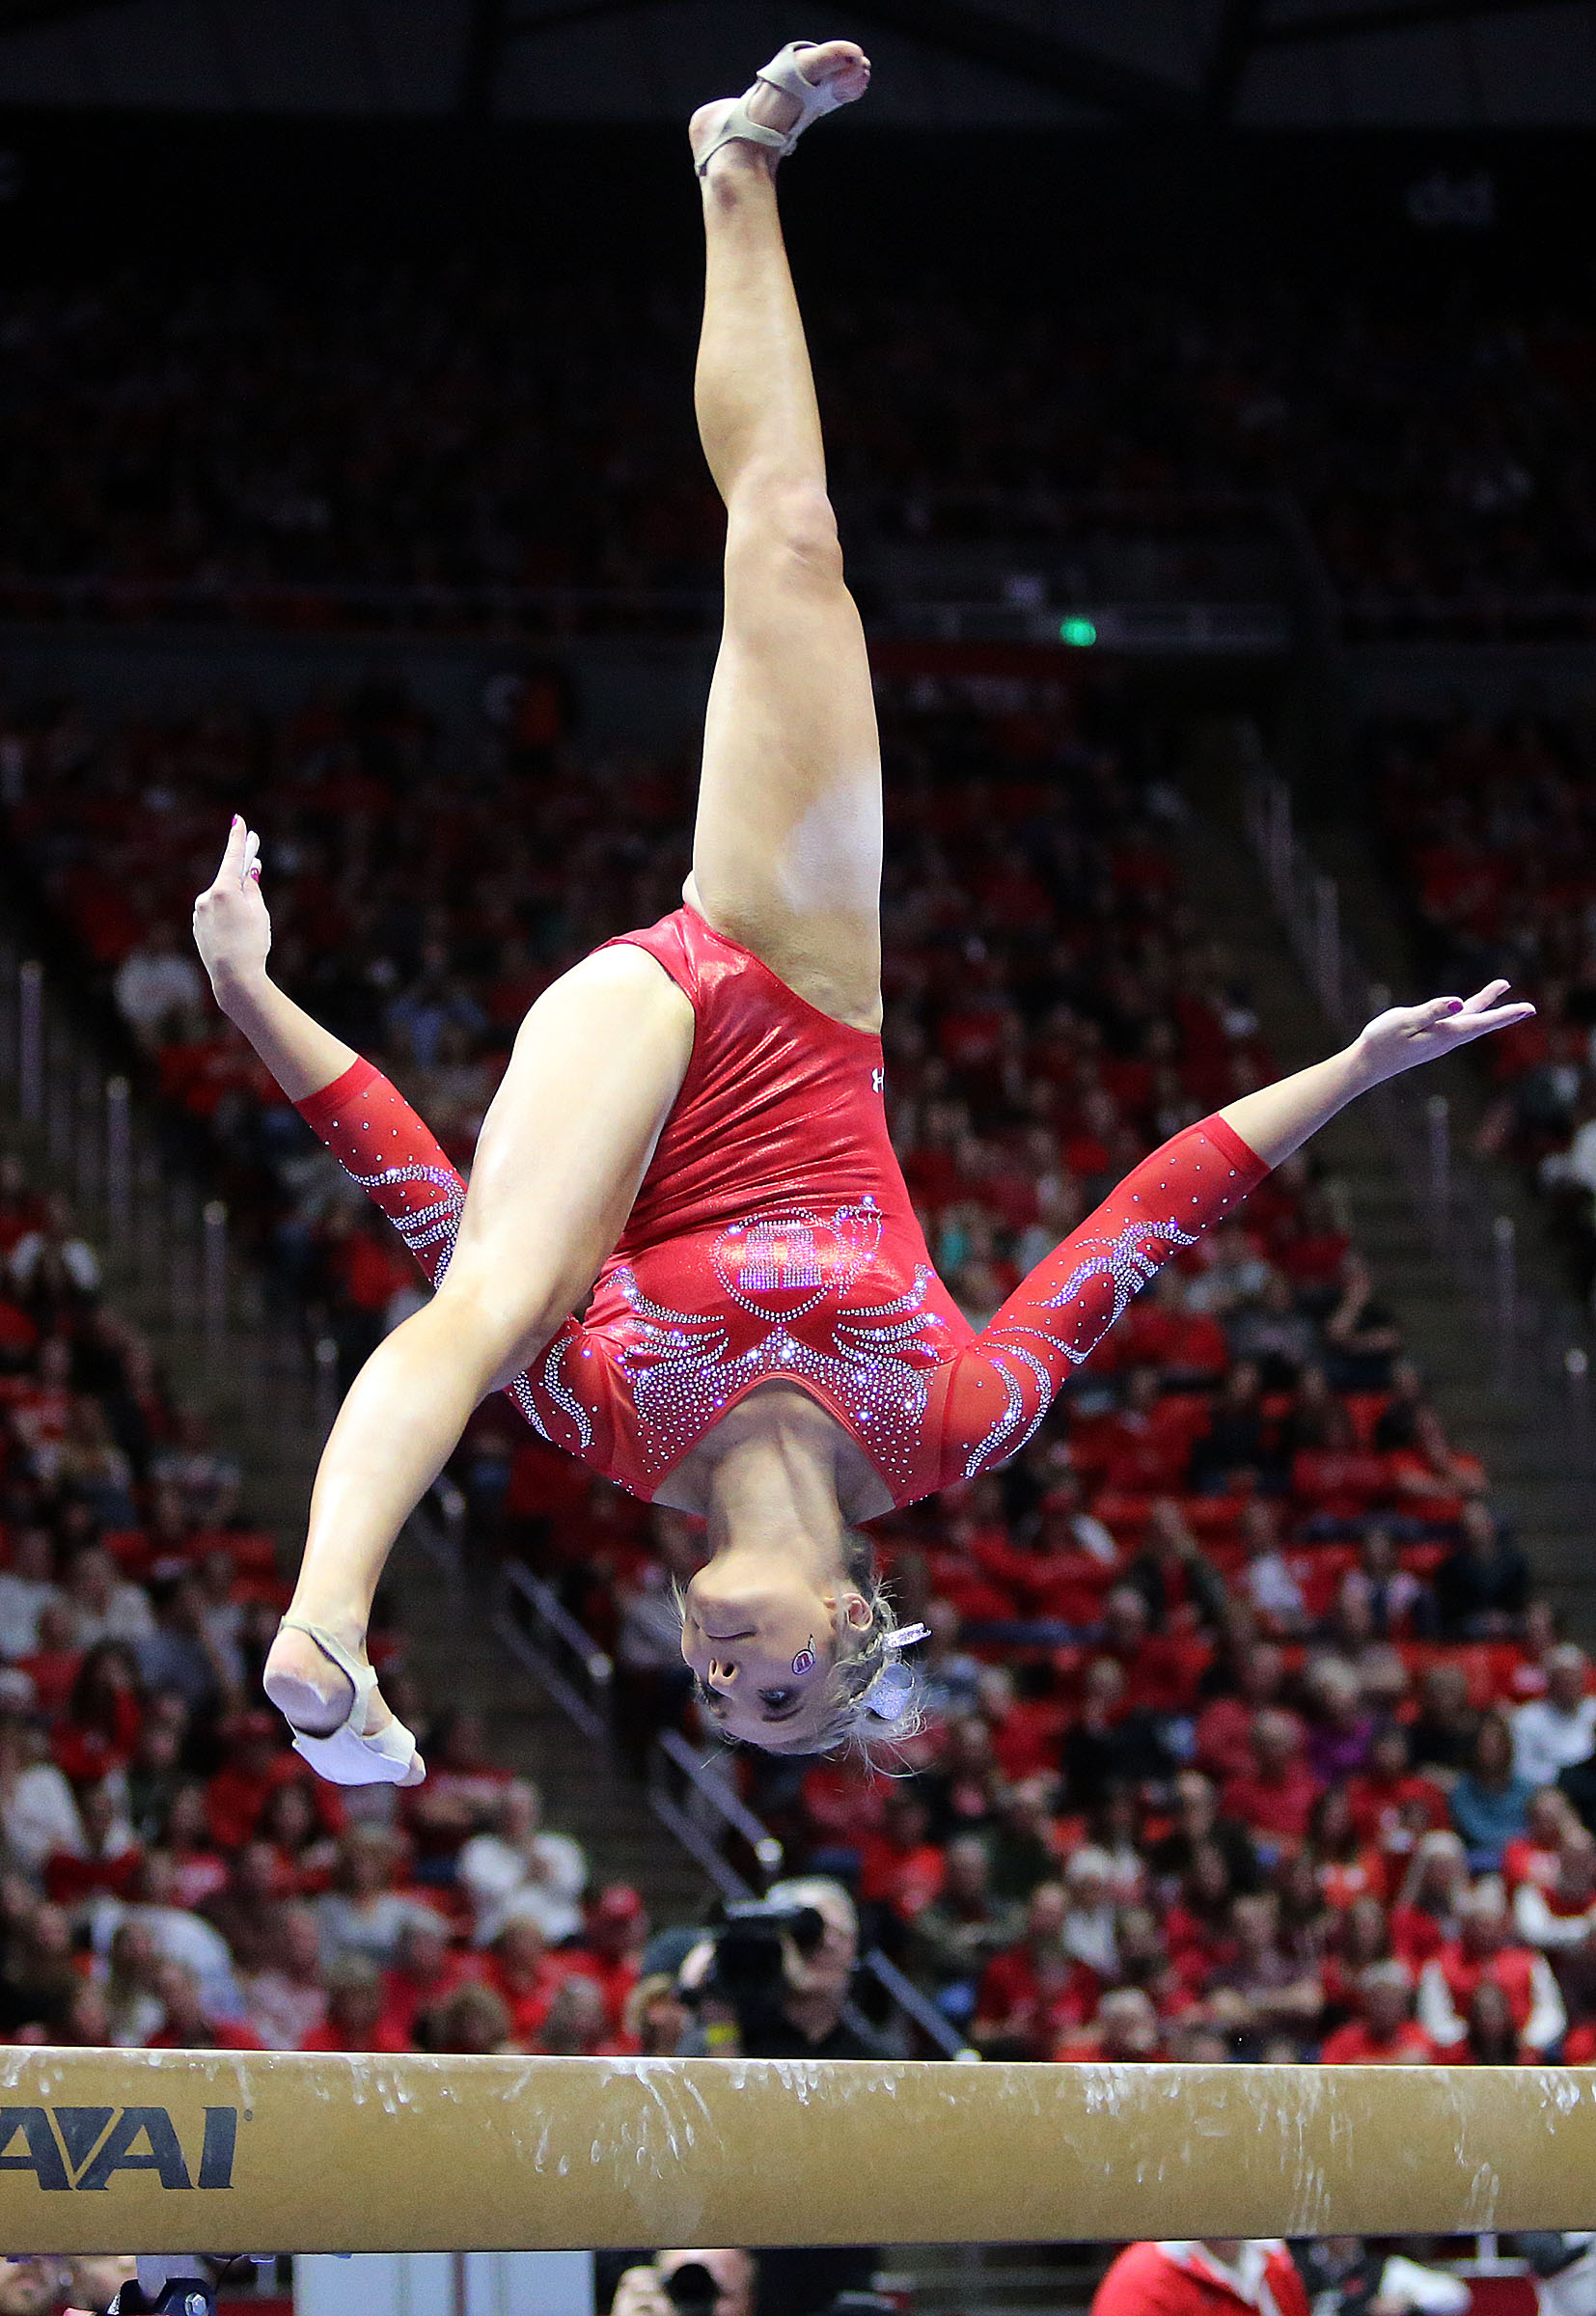 University of Utah's MyKayla Skinner scores a 9.900 on the balance beam during a gymnastics meet against BYU at the Huntsman Center in Salt Lake City on Friday, Jan. 5, 2018.